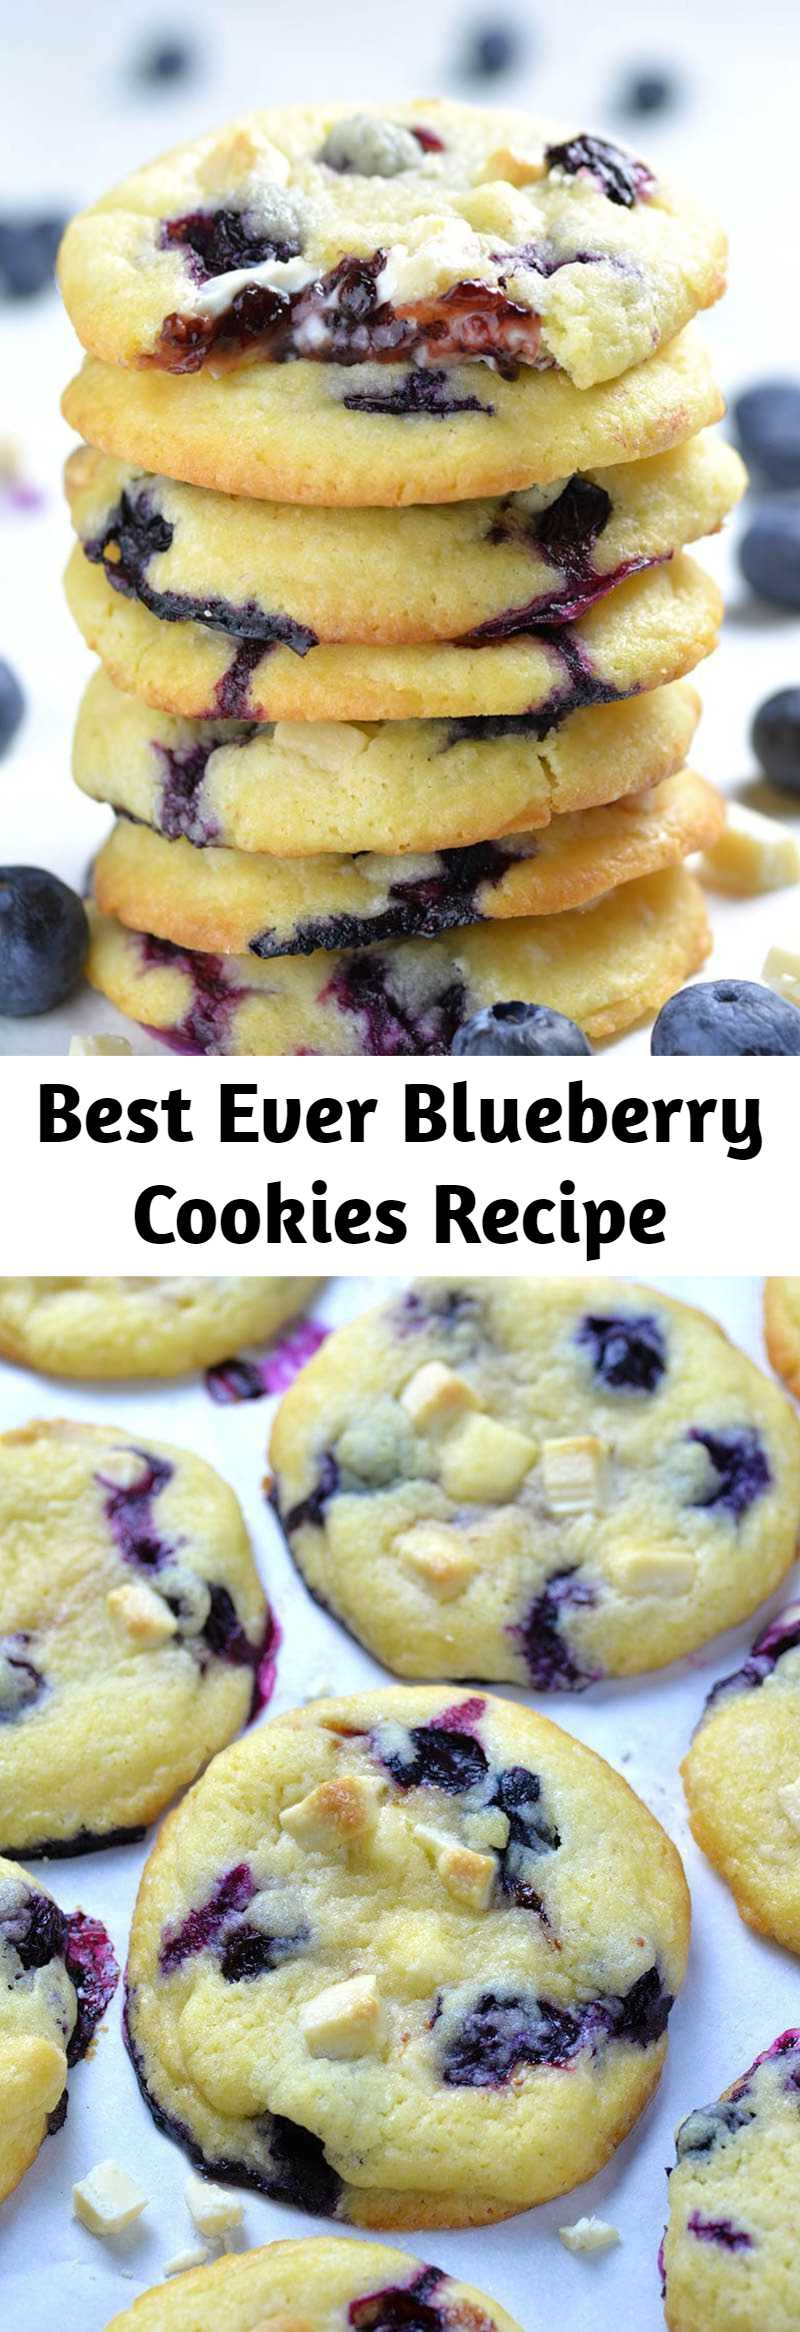 Best Ever Blueberry Cookies Recipe - Soft and chewy Blueberry Cookies with fresh blueberries, white chocolate chunks and gooey cream cheese and blueberry jam filling in the center are really the best blueberry cookies ever. #blueberry #cookies #blueberryrecipe #cookierecipe